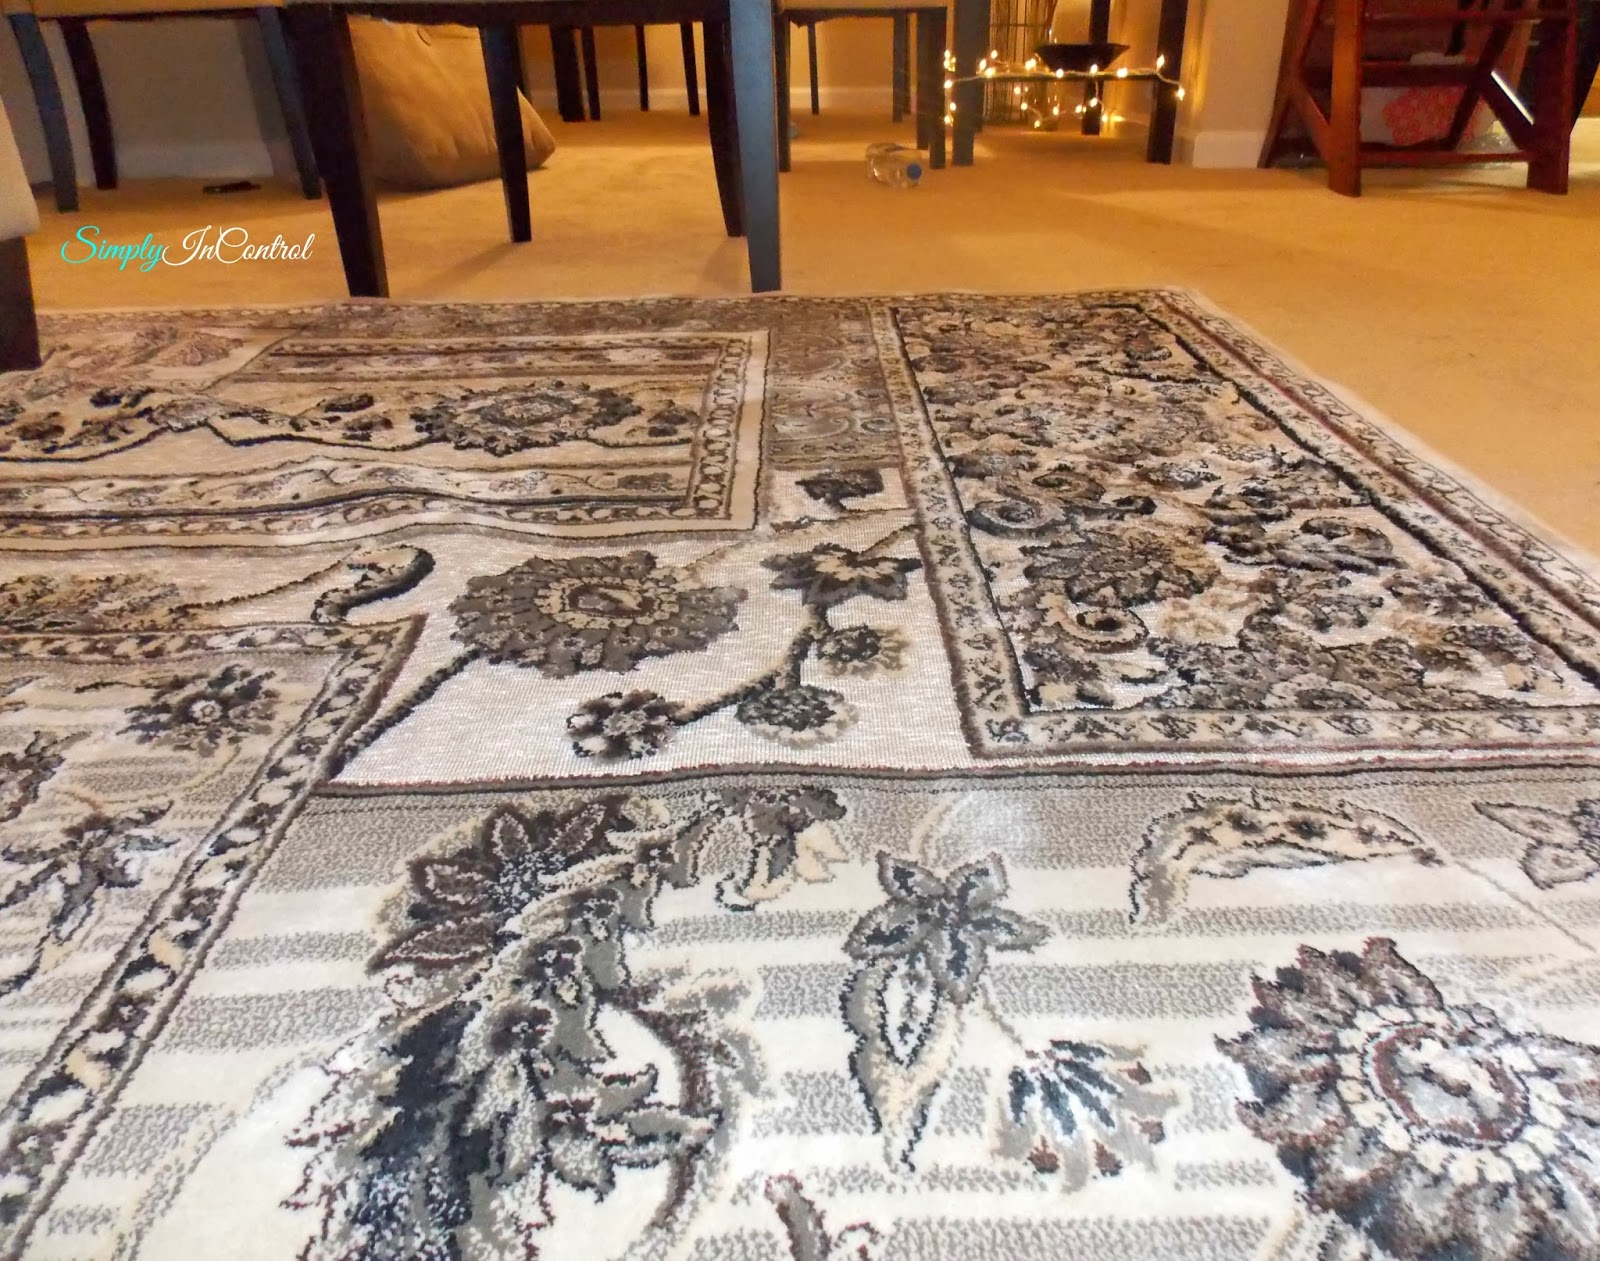 Also  Home Goods has the best accent chairs and rugs  Ever  At discounted. home goods rugs prices   Roselawnlutheran